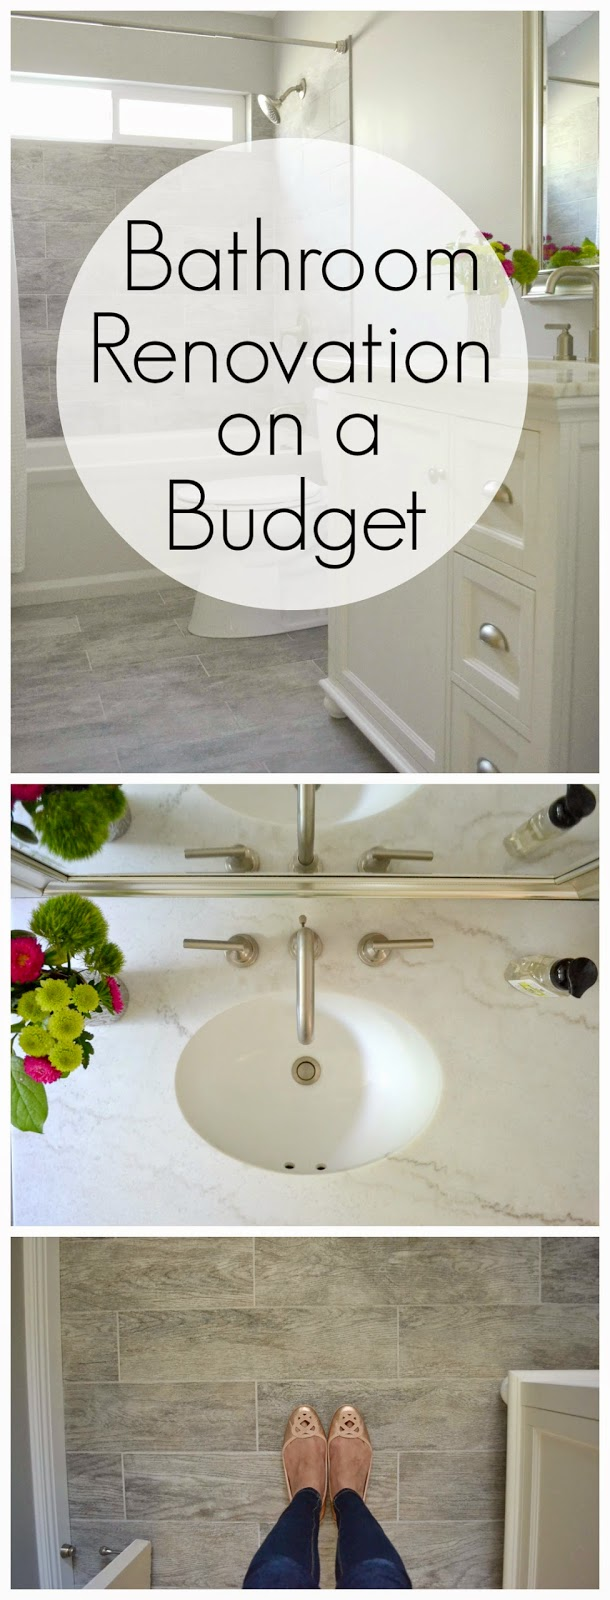 ... to renovate a bathroom on a budget , inexpensive bathroom renovation